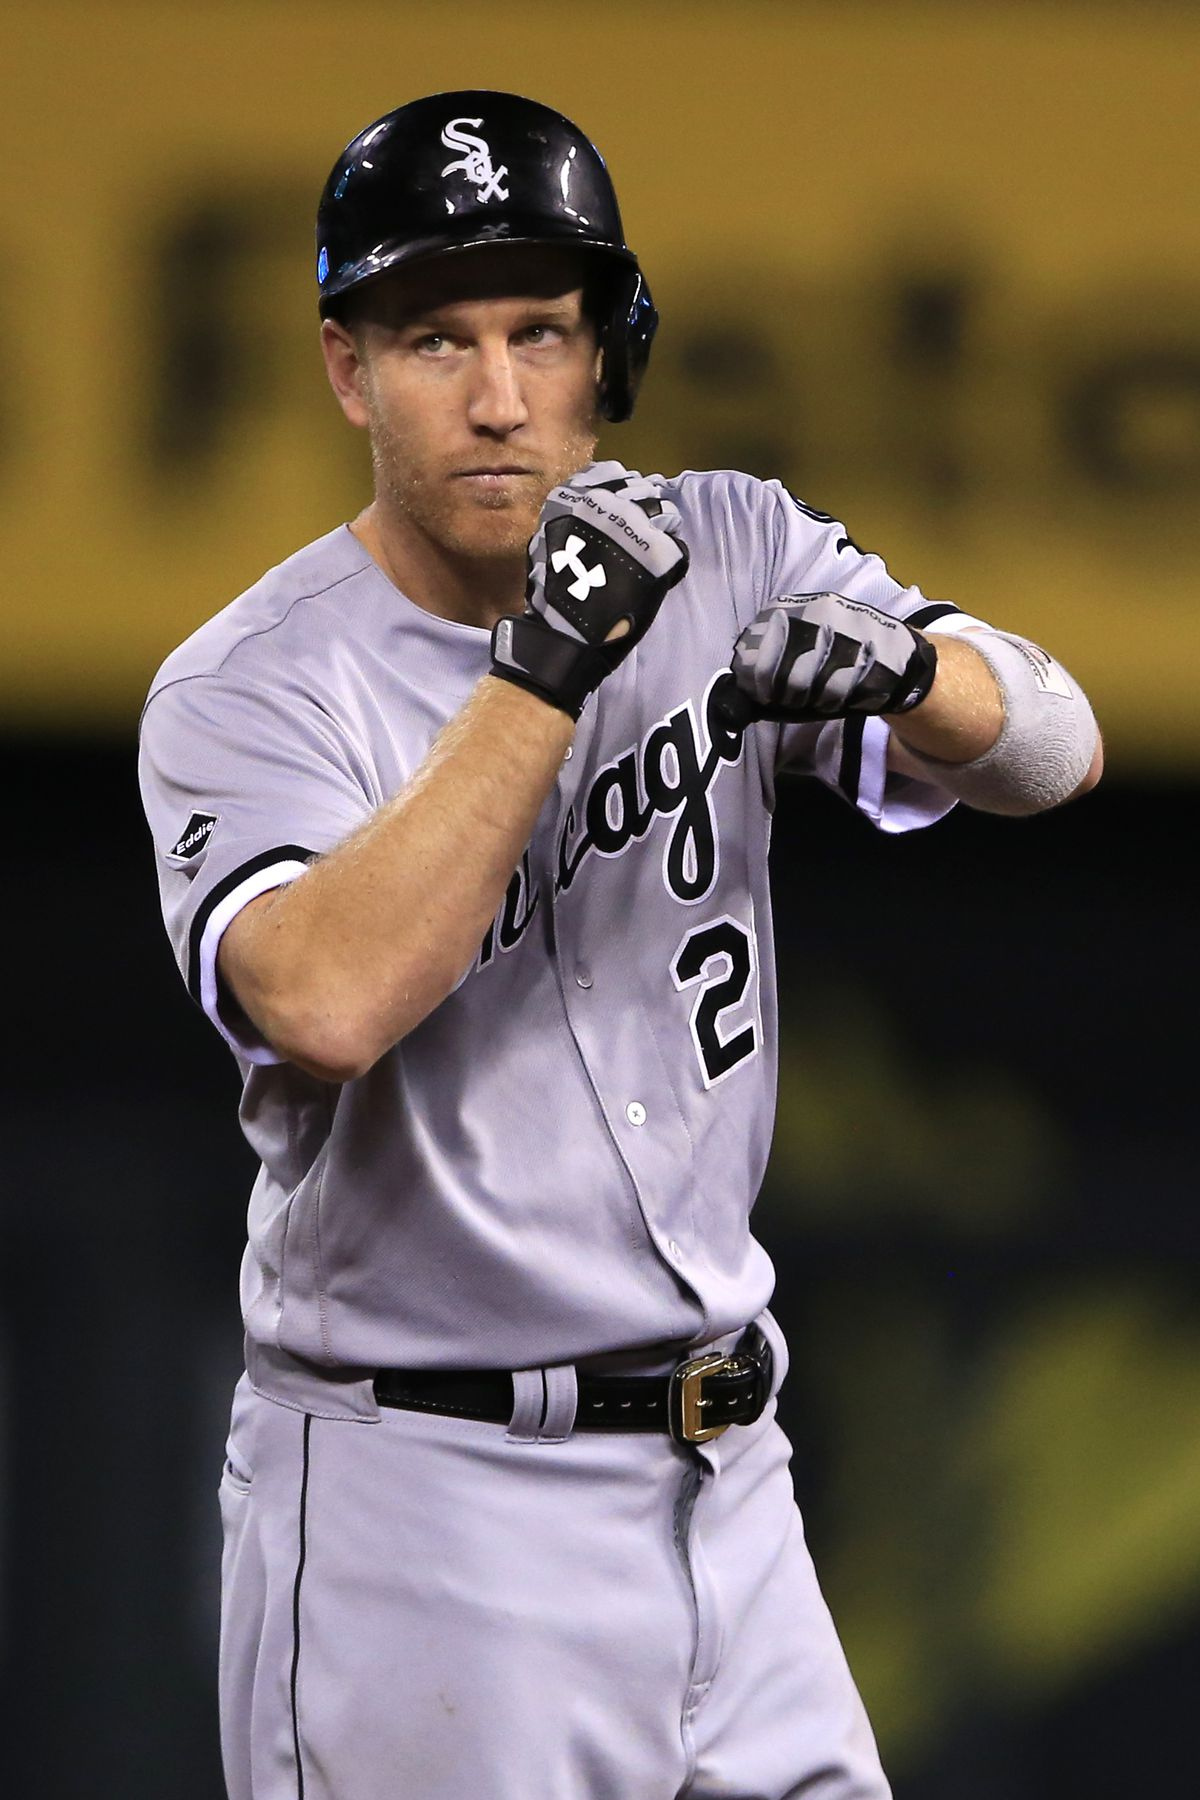 Todd Frazier gestures to teammates after hitting a double against Kelvin Herrera Friday. (AP Photo/Orlin Wagner)